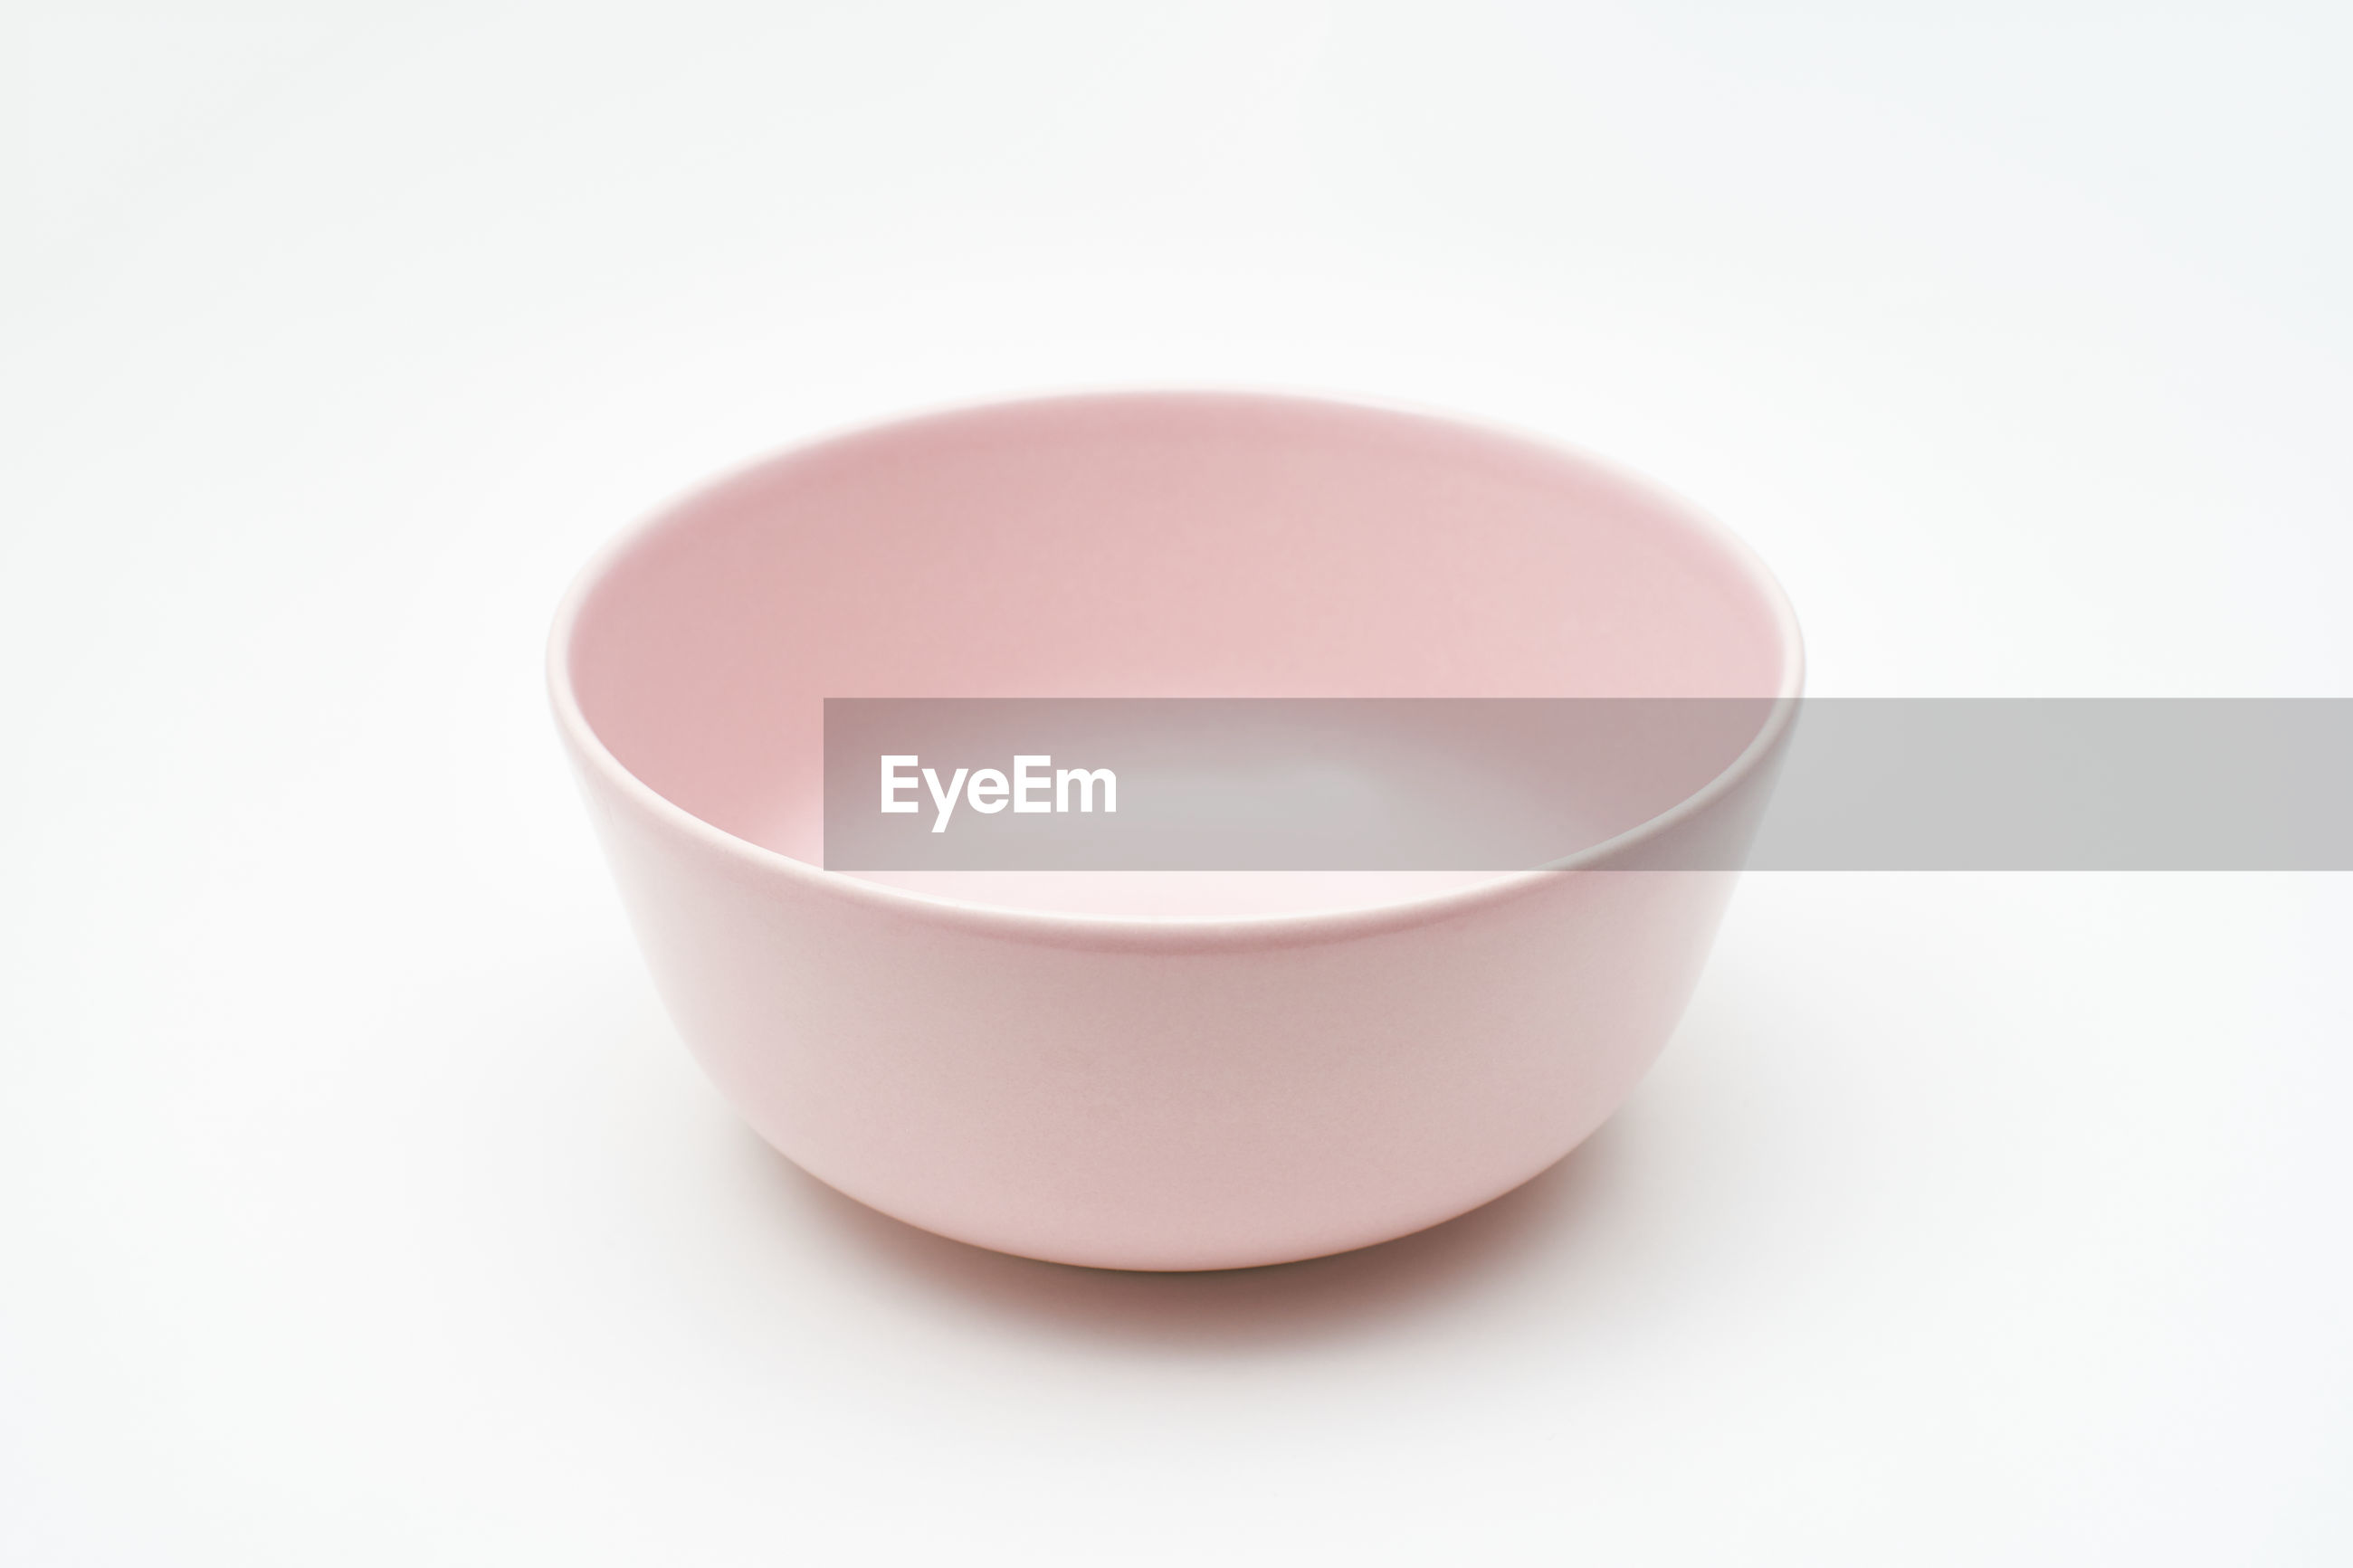 A pink bowl on white background